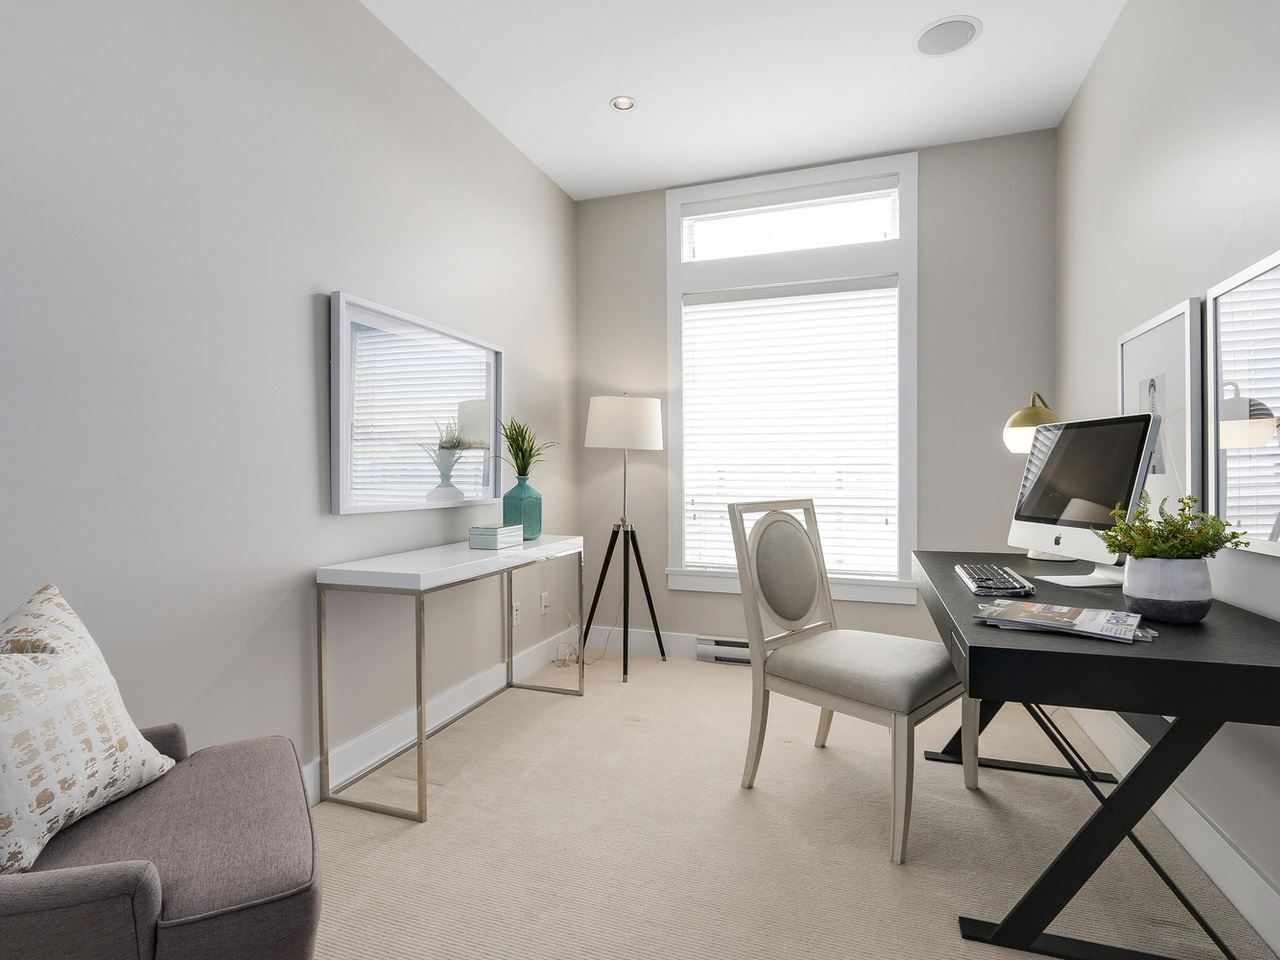 """Photo 17: Photos: 404 6328 LARKIN Drive in Vancouver: University VW Condo for sale in """"Journey"""" (Vancouver West)  : MLS®# R2146632"""